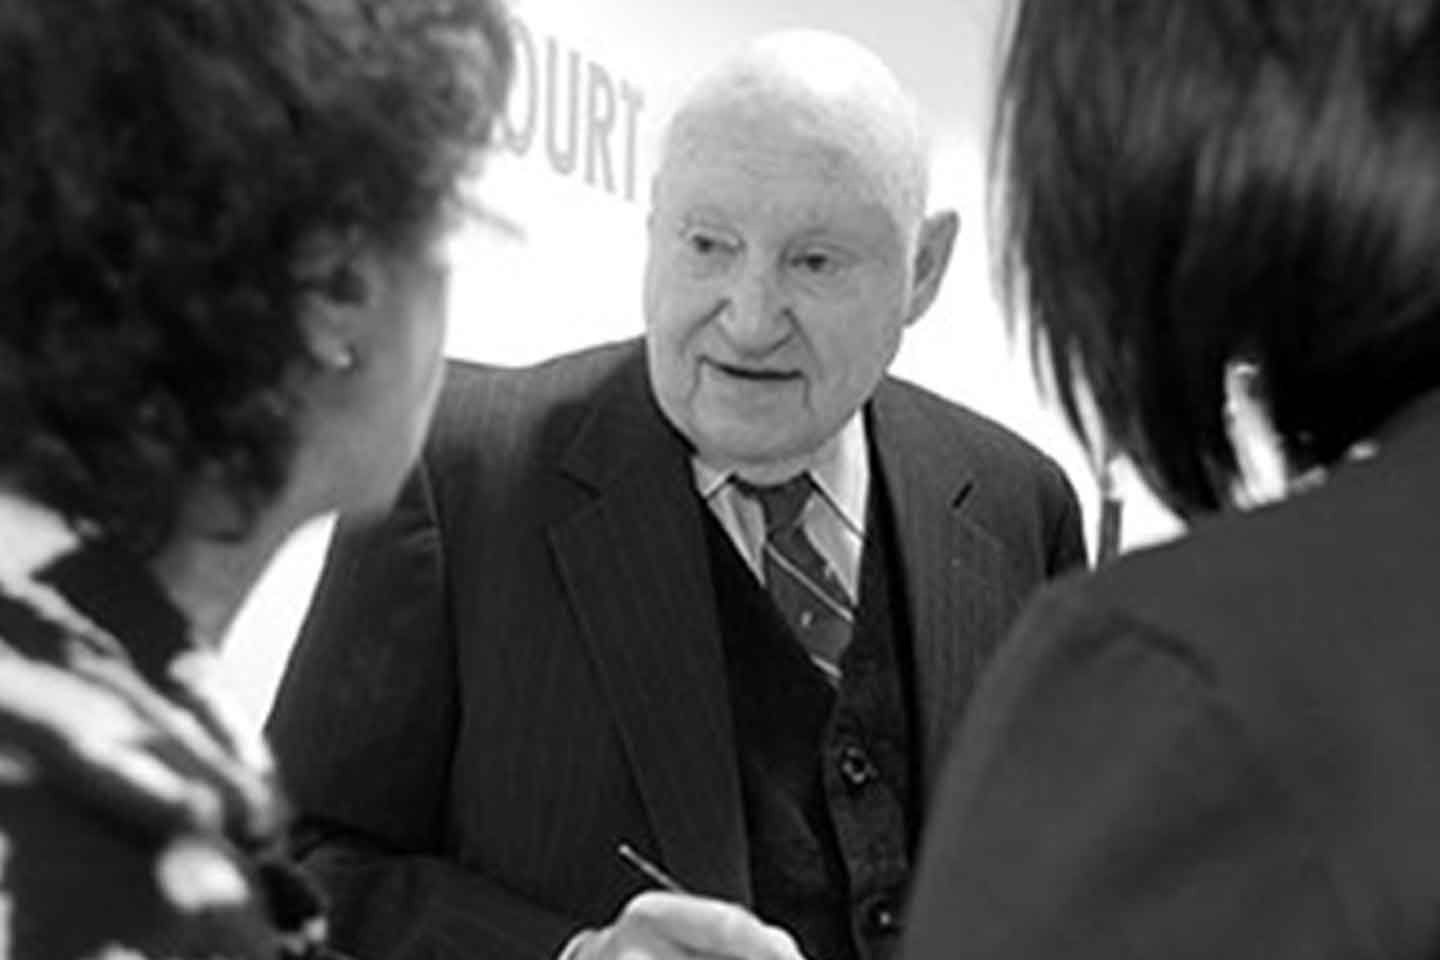 Truett Cathy speaks with two women